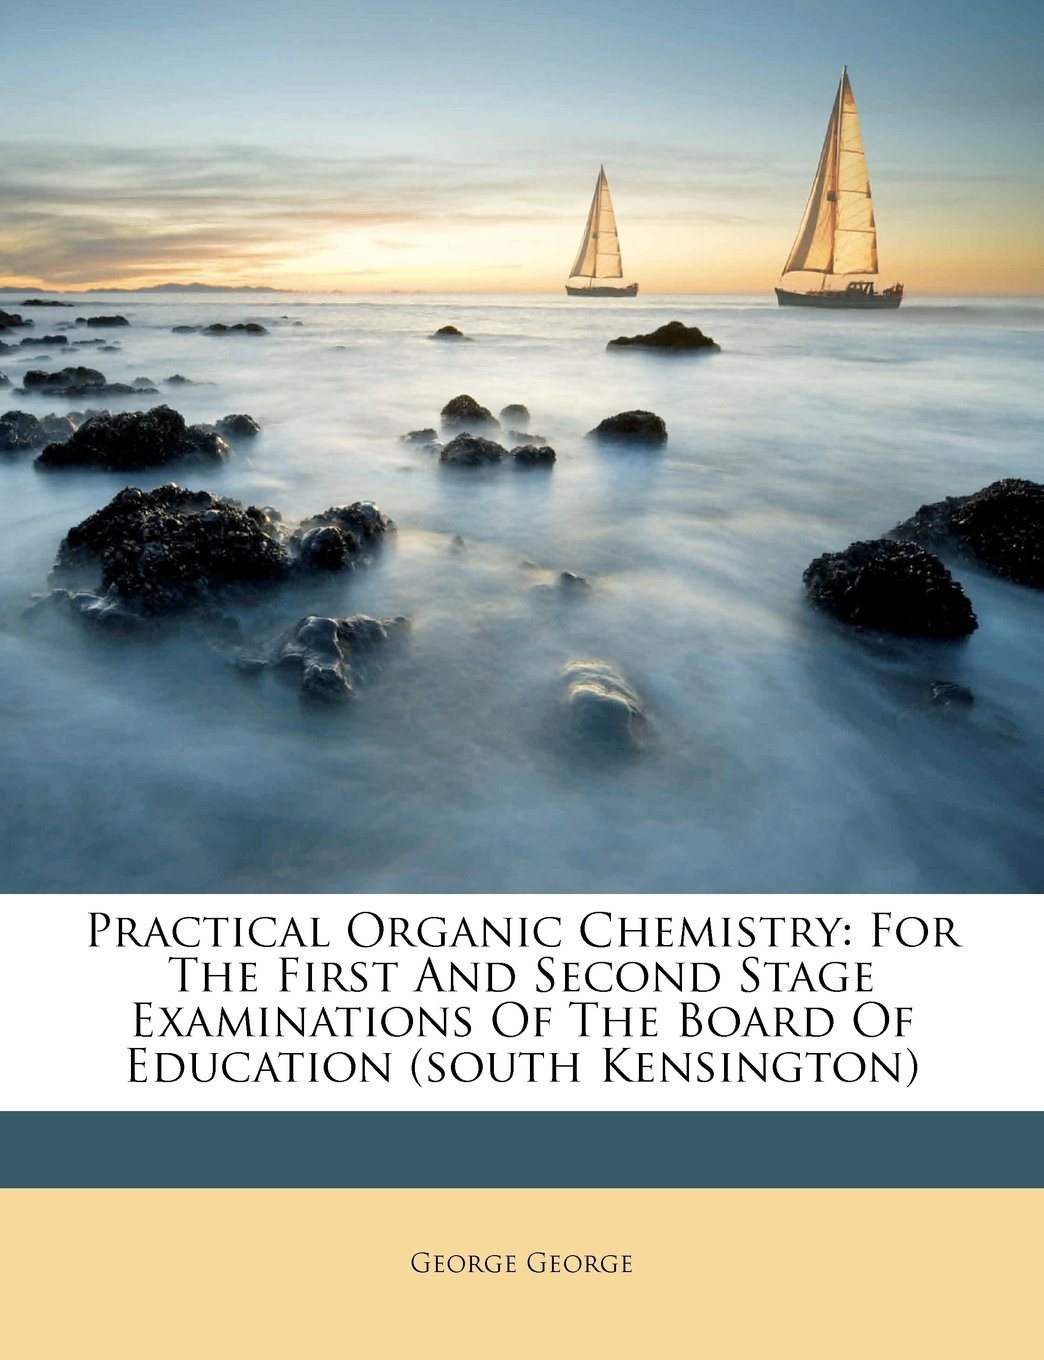 Download Practical Organic Chemistry: For The First And Second Stage Examinations Of The Board Of Education (south Kensington) pdf